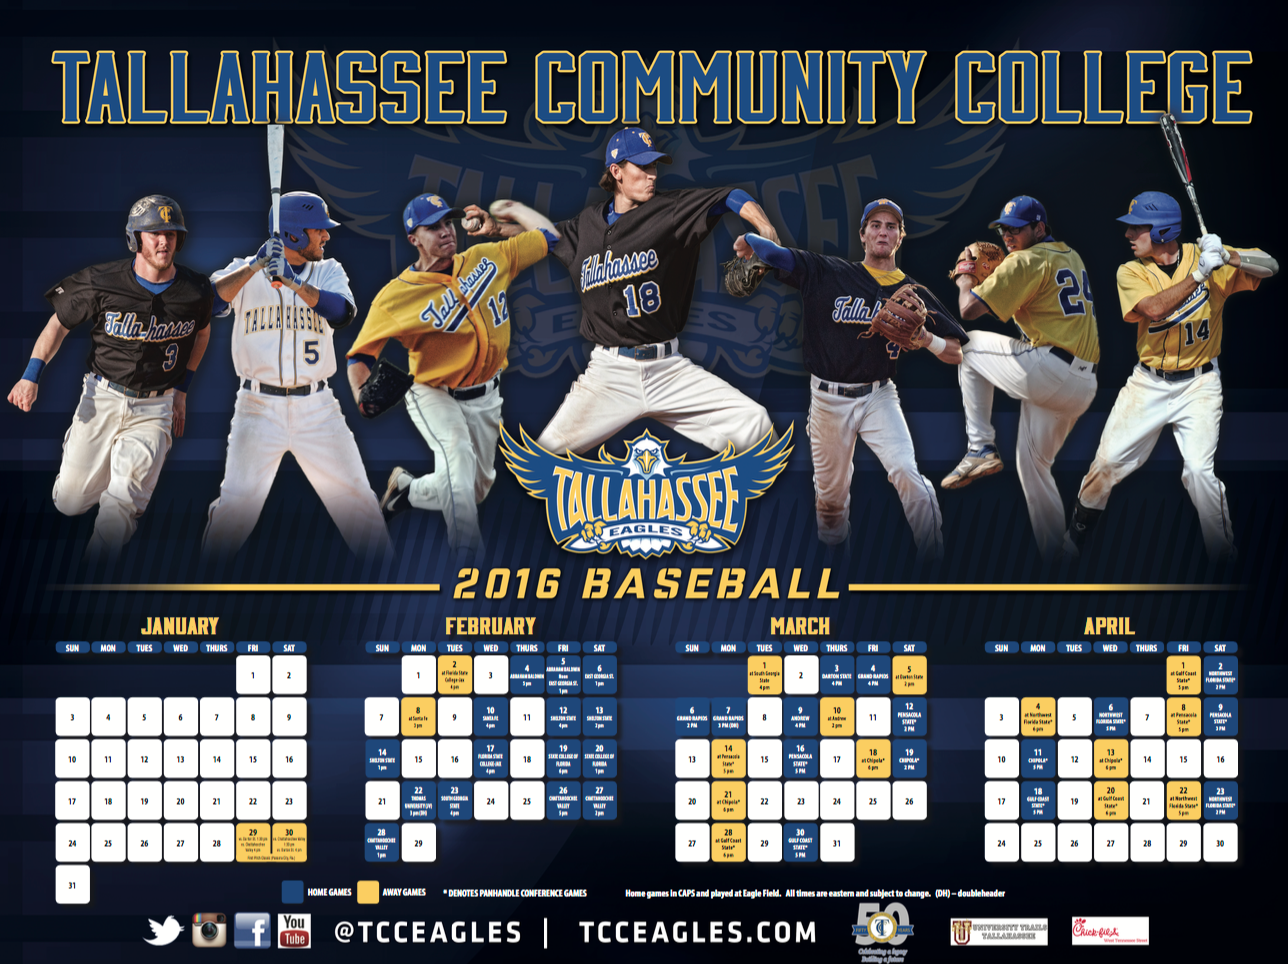 Tallahassee Community College Baseball Poster Tallahassee Community College Baseball Posters Community College